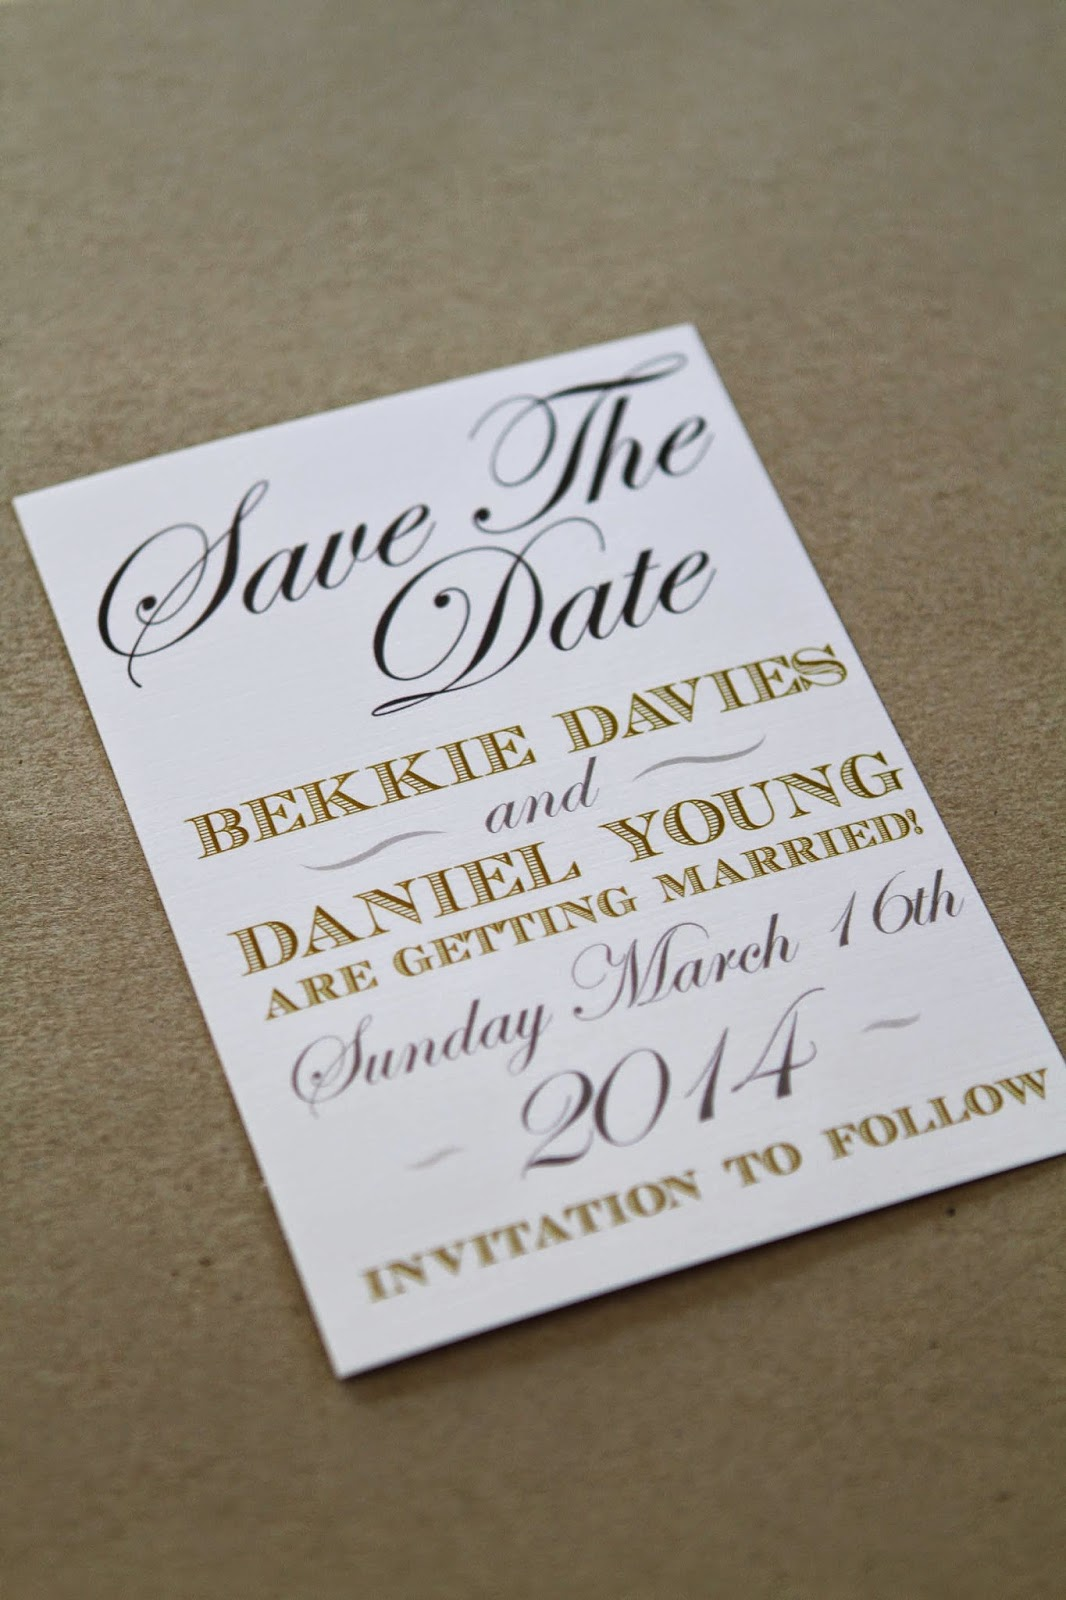 stylish classic wedding invitations gold sail and swan melbourne sydney adelaide perth